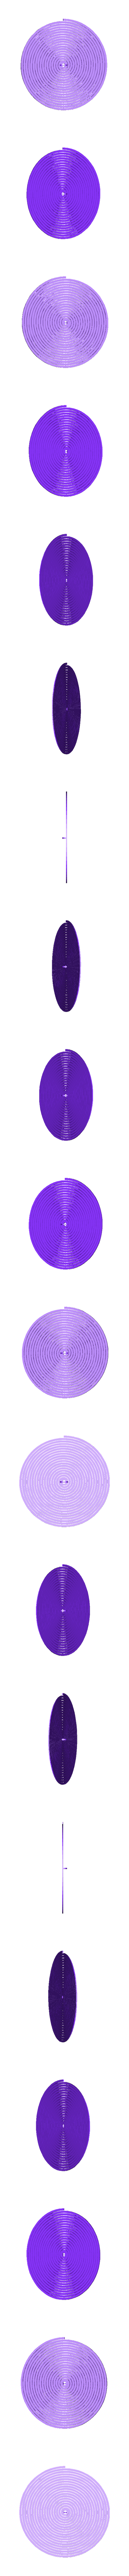 80mm_Hanging_Spiral.stl Download free SCAD file Customizable Hanging Spirals • Model to 3D print, WalterHsiao